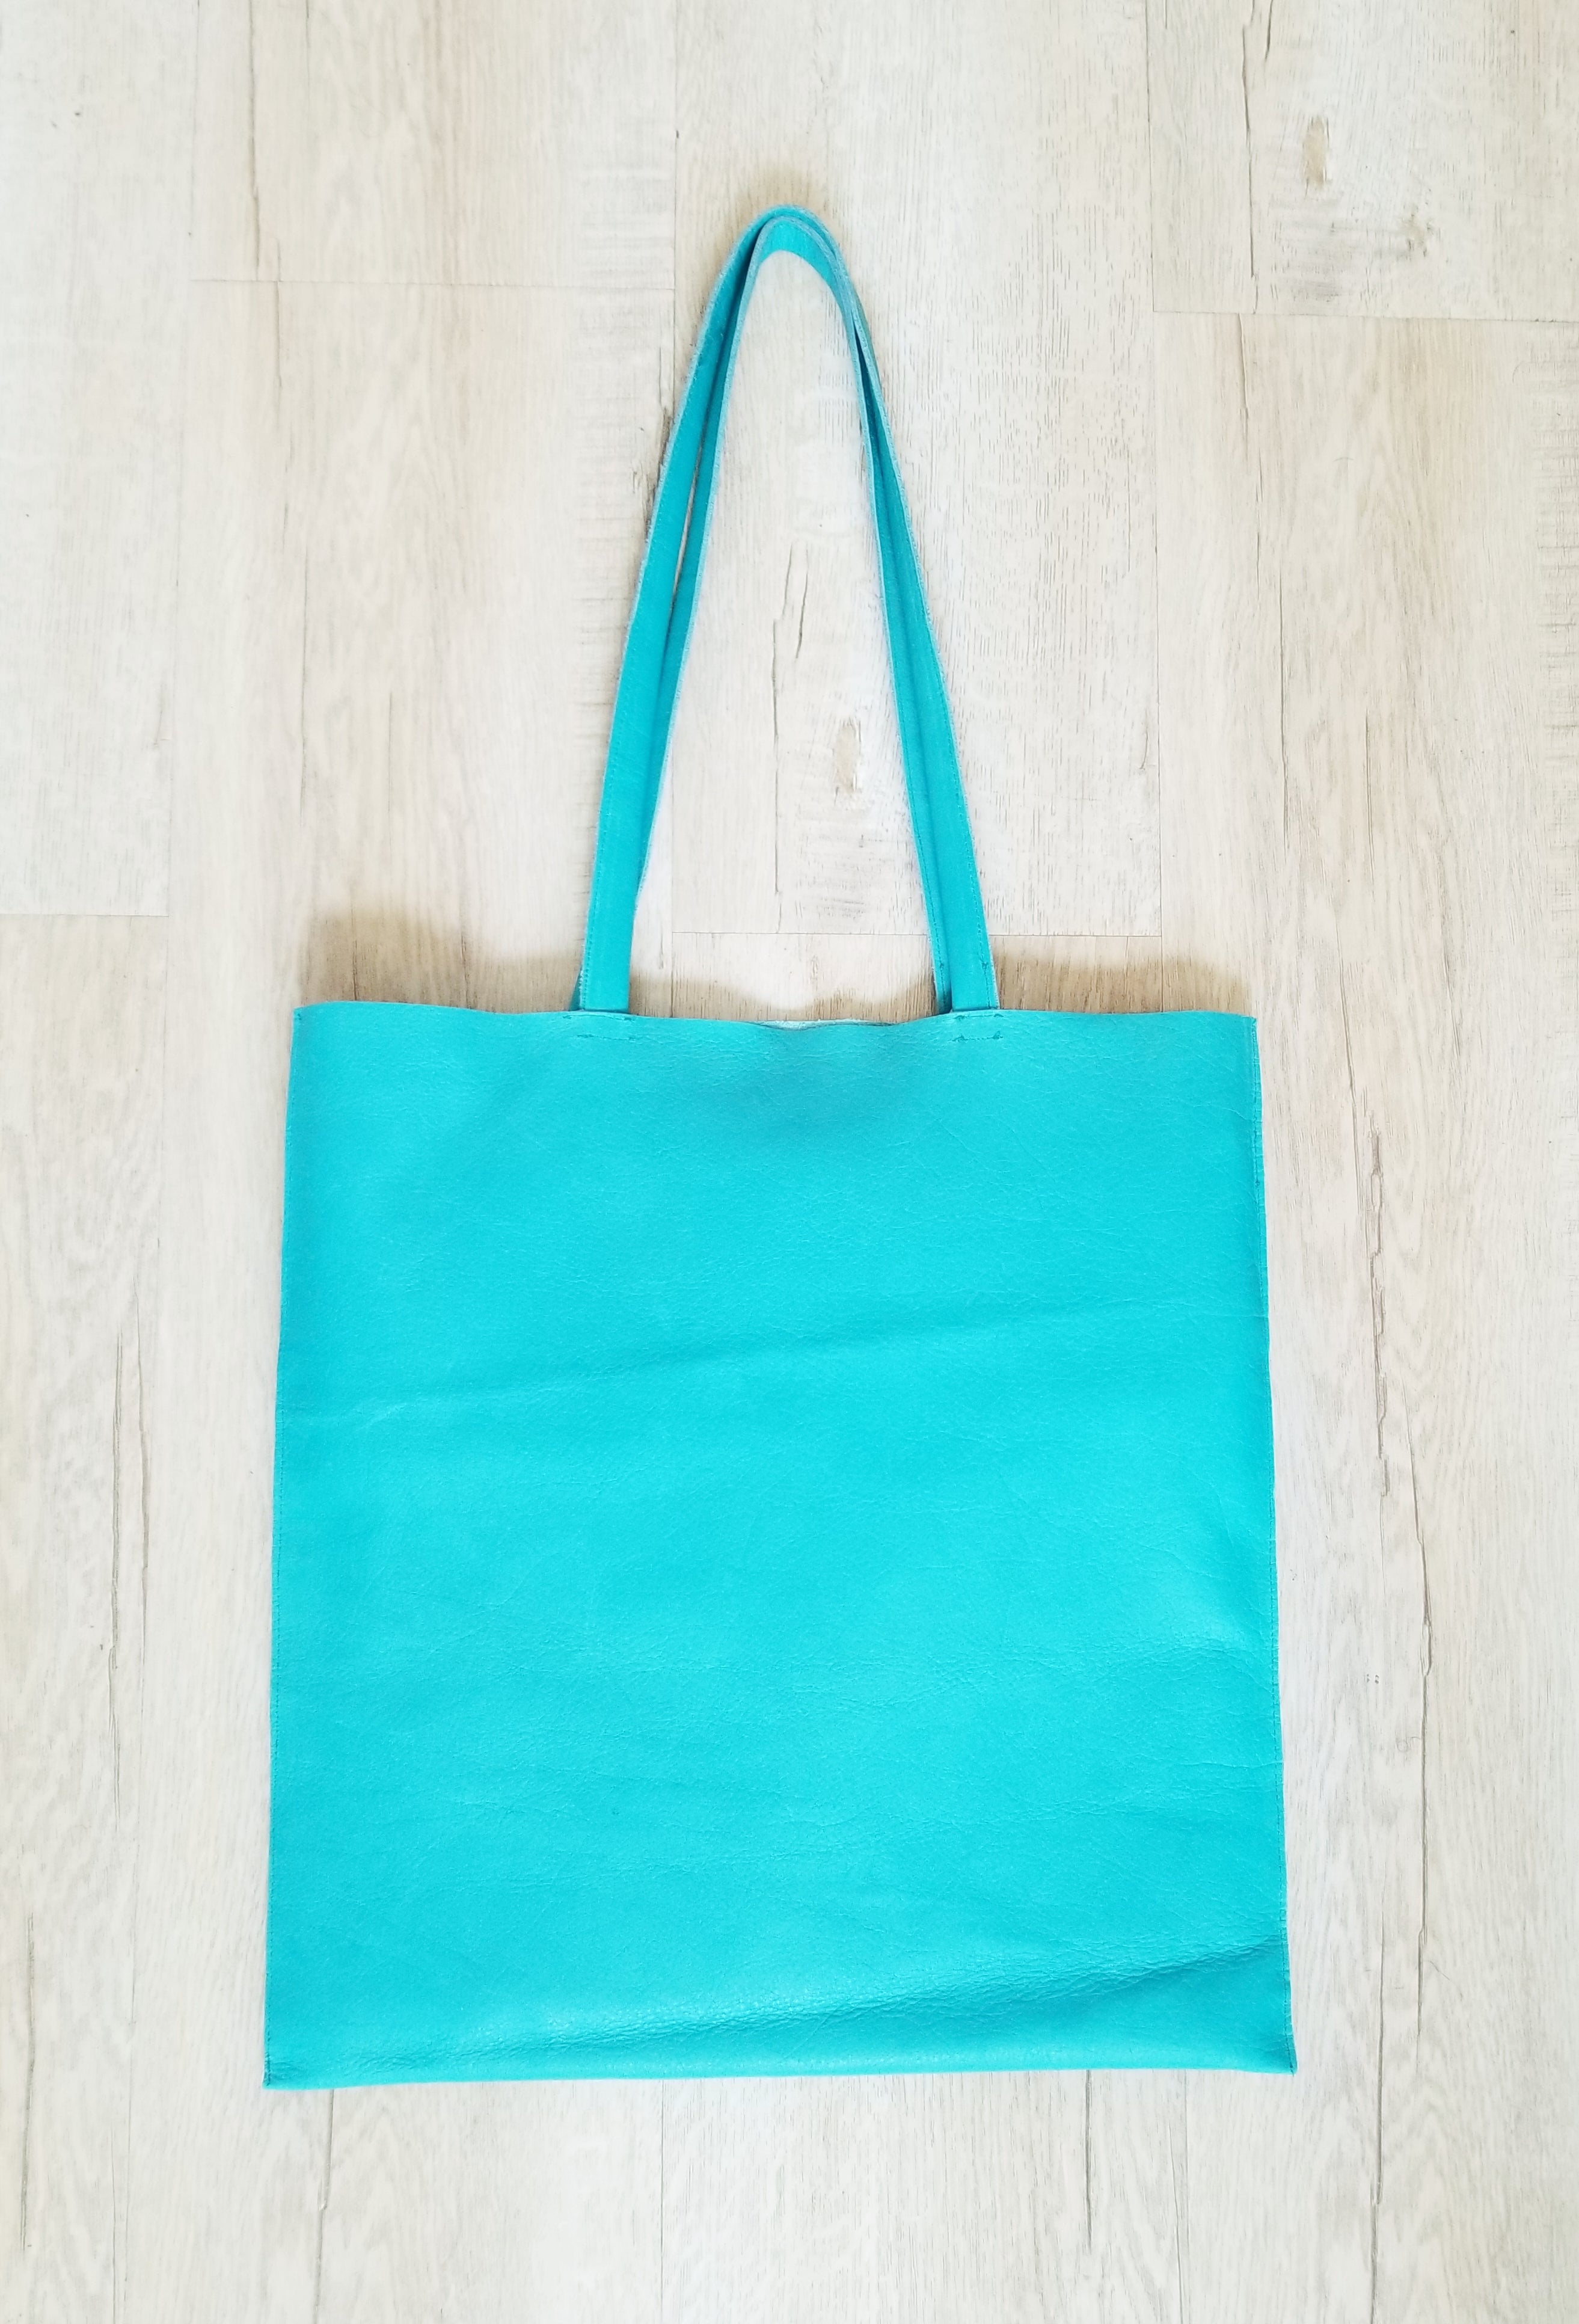 Blue leather tote bag with 2 inside pockets